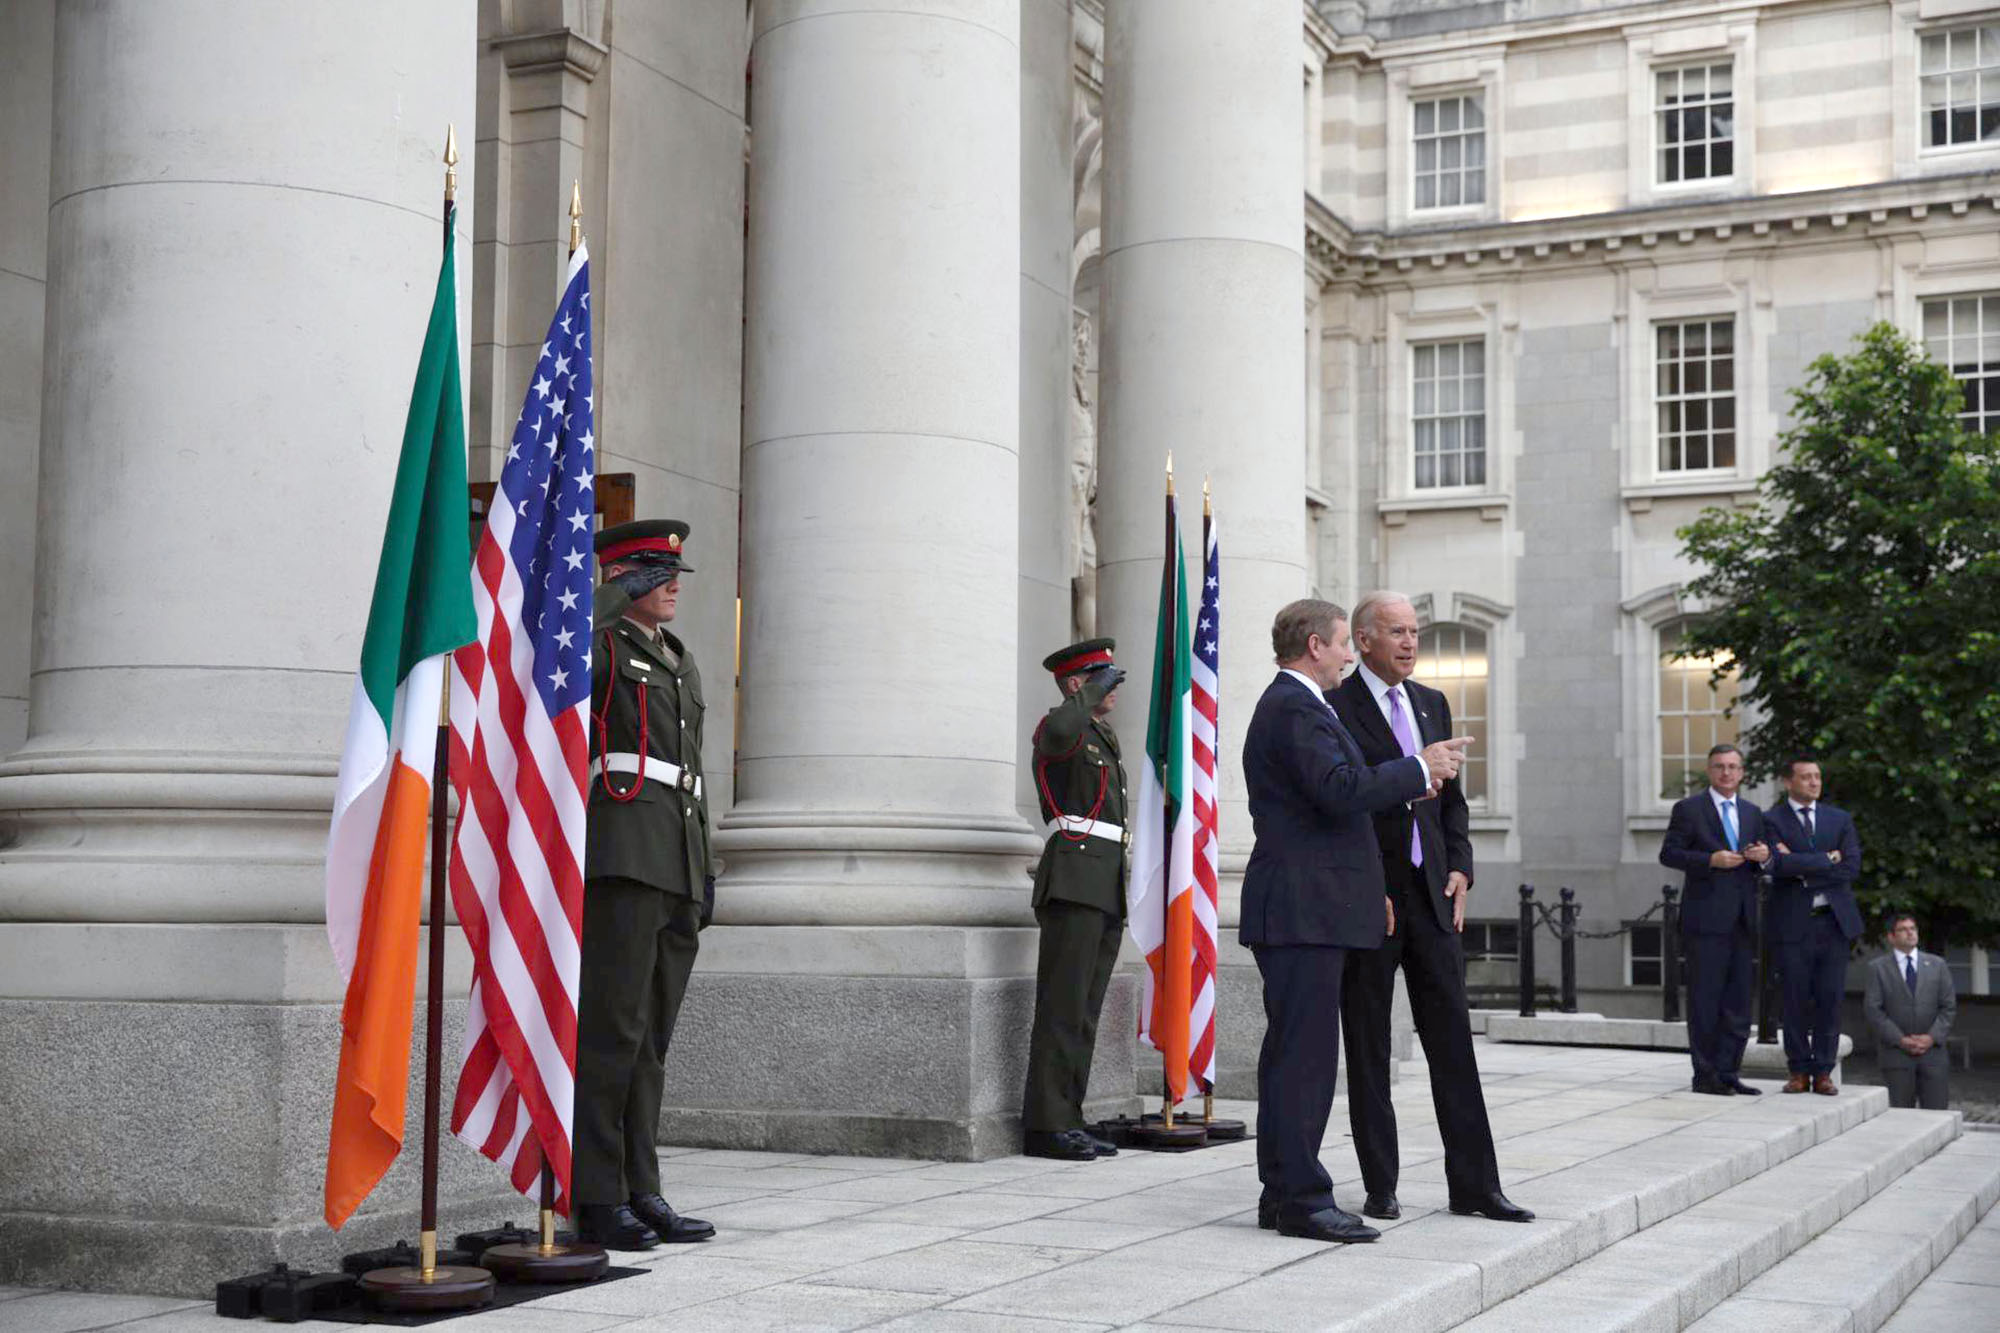 Vice President Joe Biden is greeted by Taoiseach Kenny outside the government building before their bilateral meeting, in Dublin, Ireland, June 21, 2016. (Official White House Photo by David Lienemann)